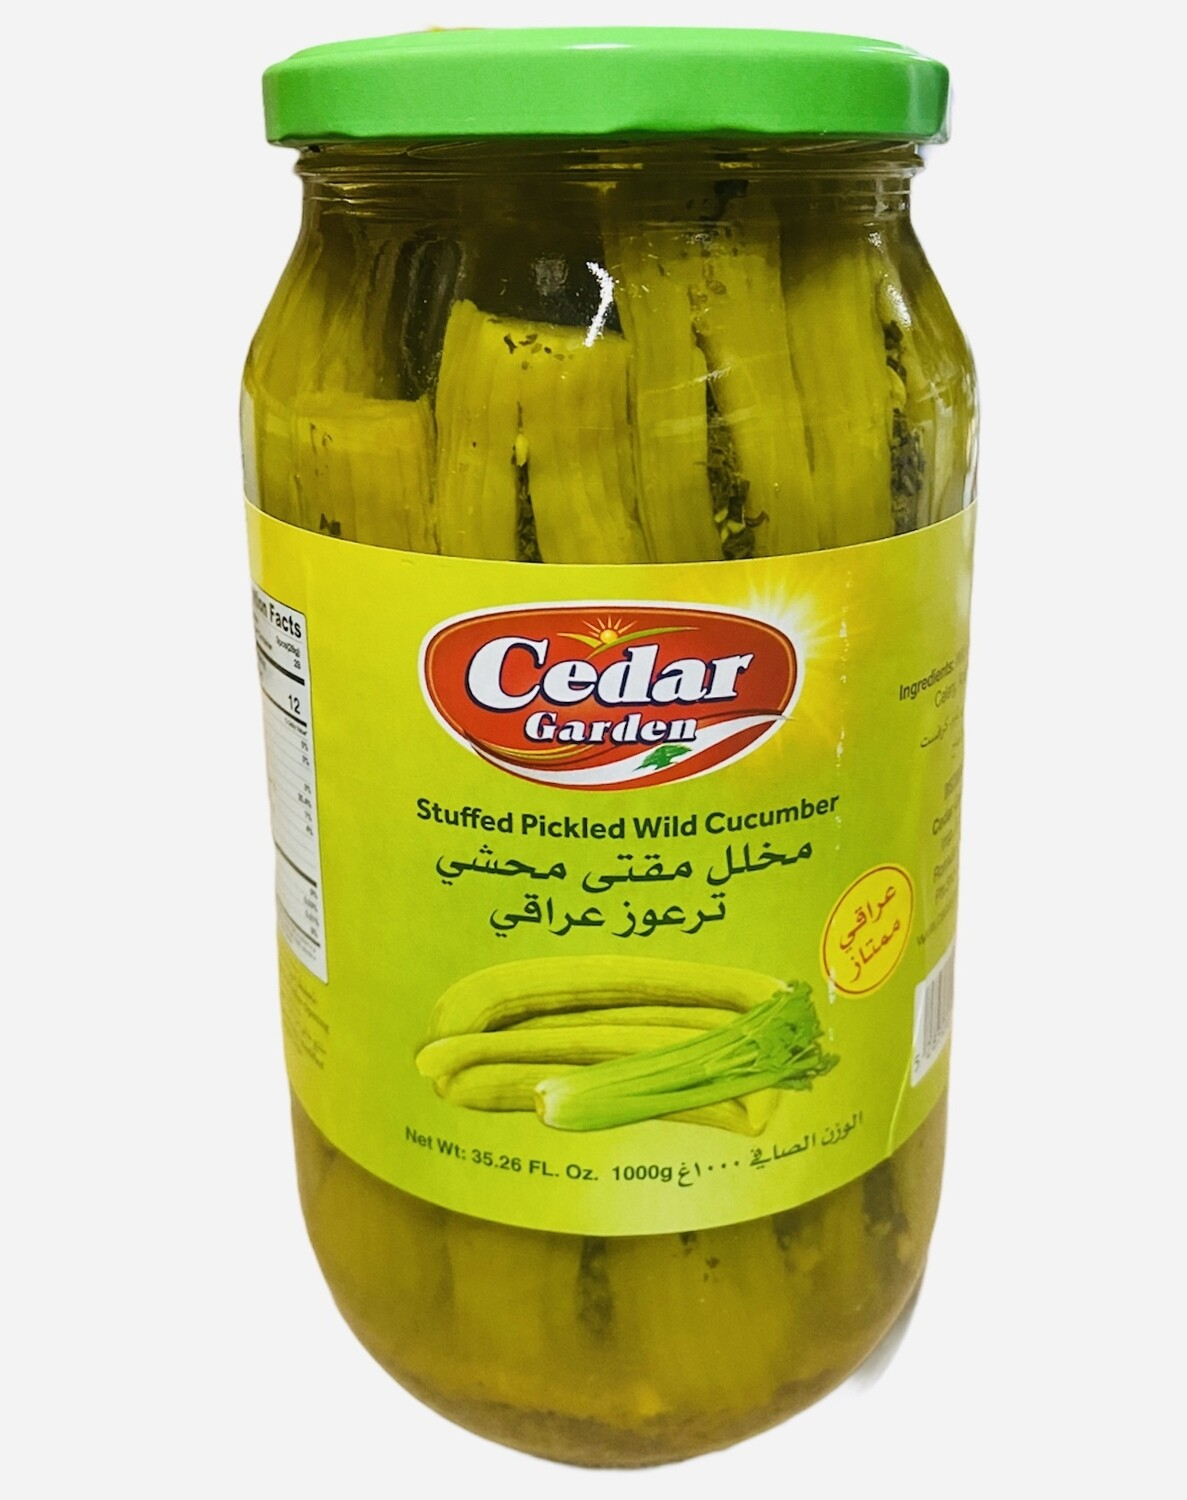 Cedar Garden Stuffed Pickled Wild Cucumber 12x1kg